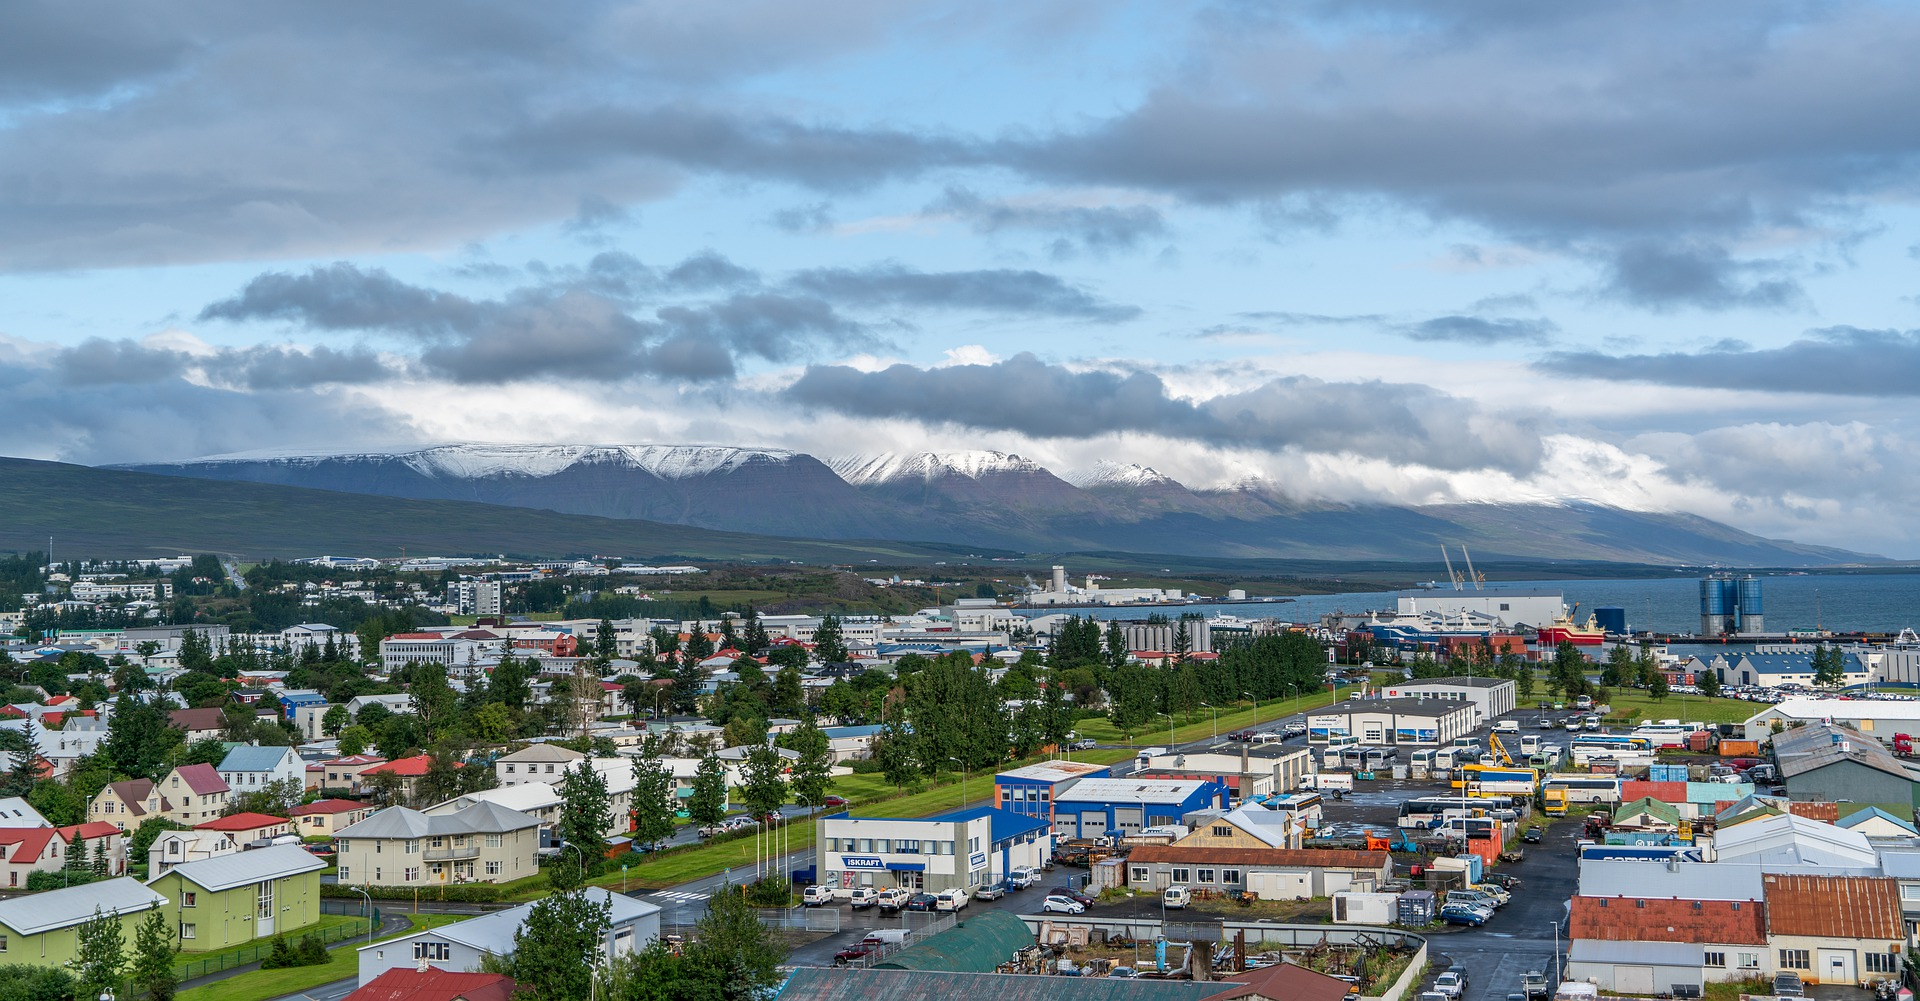 the city of akureyri with colorful houses and mountains on the background